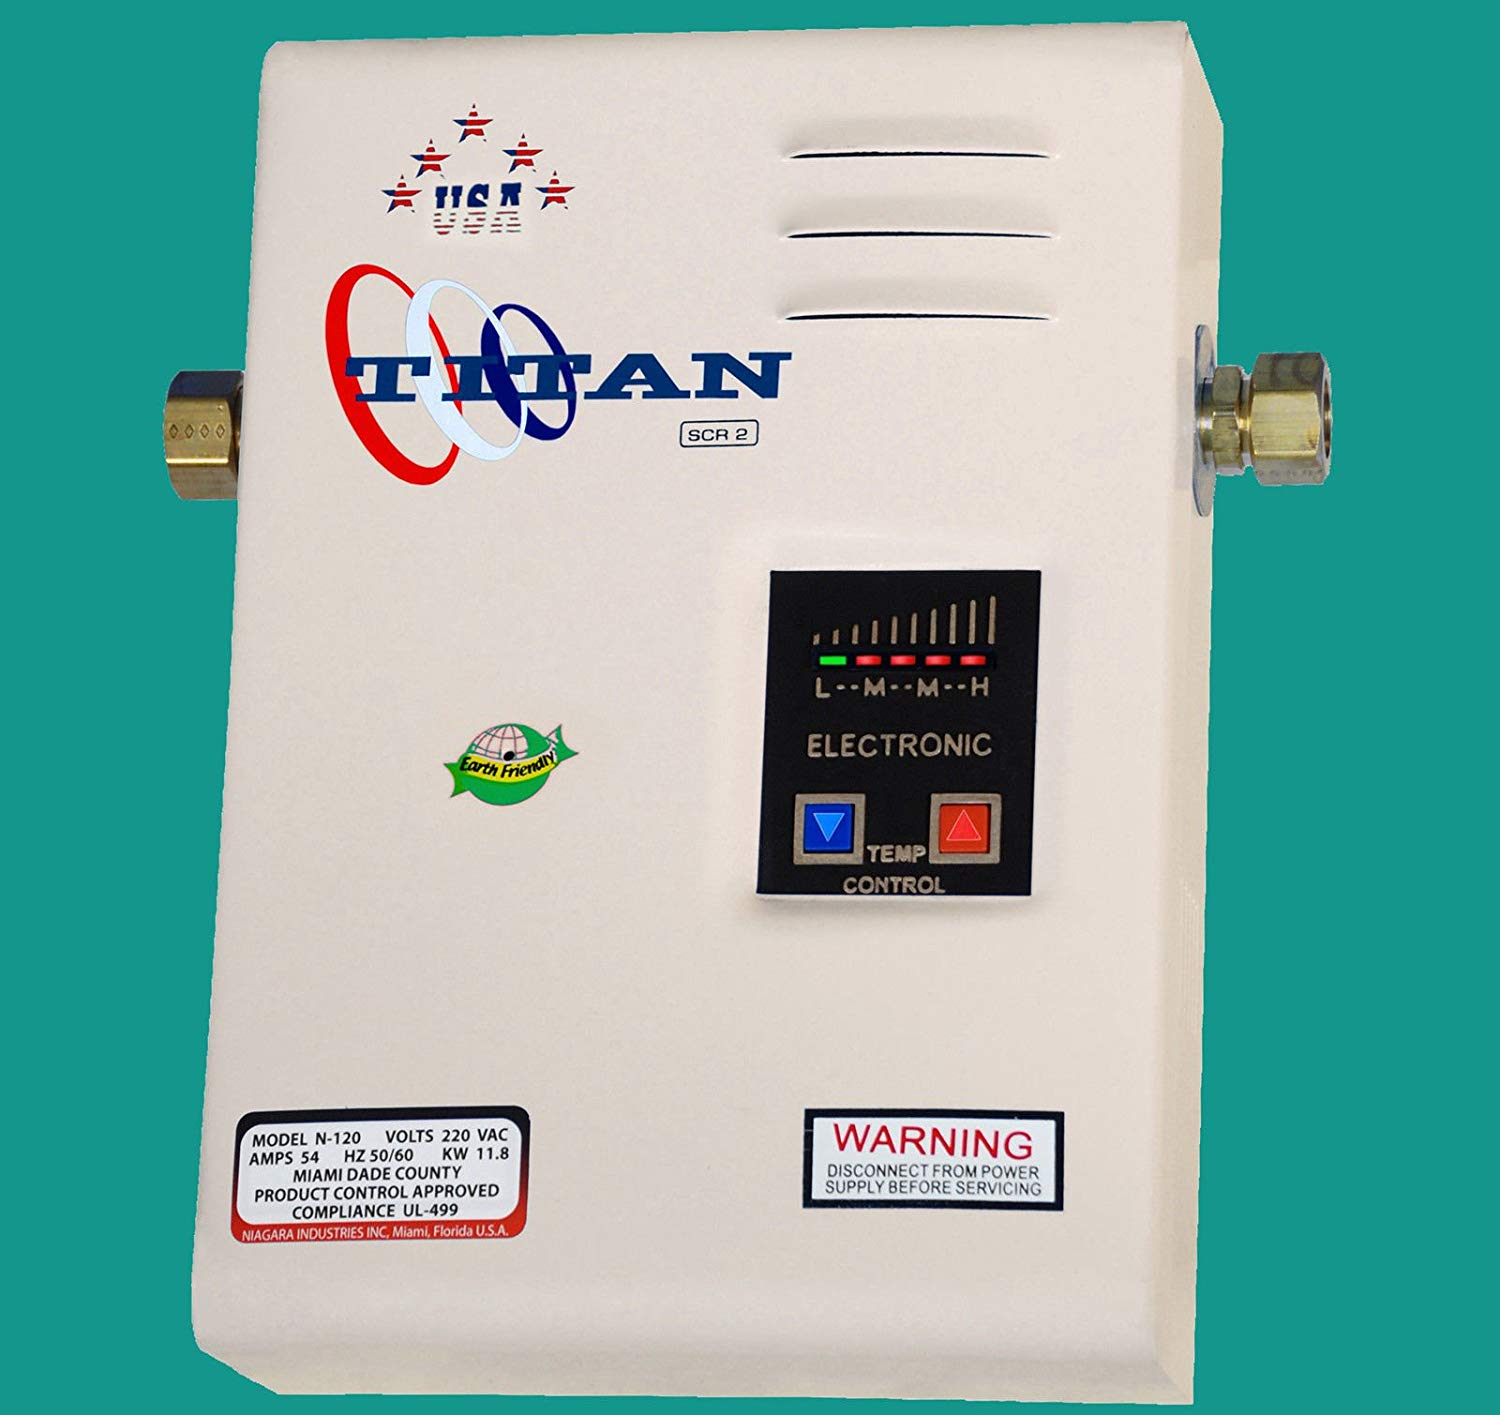 Top Tankless Water Heater 2019